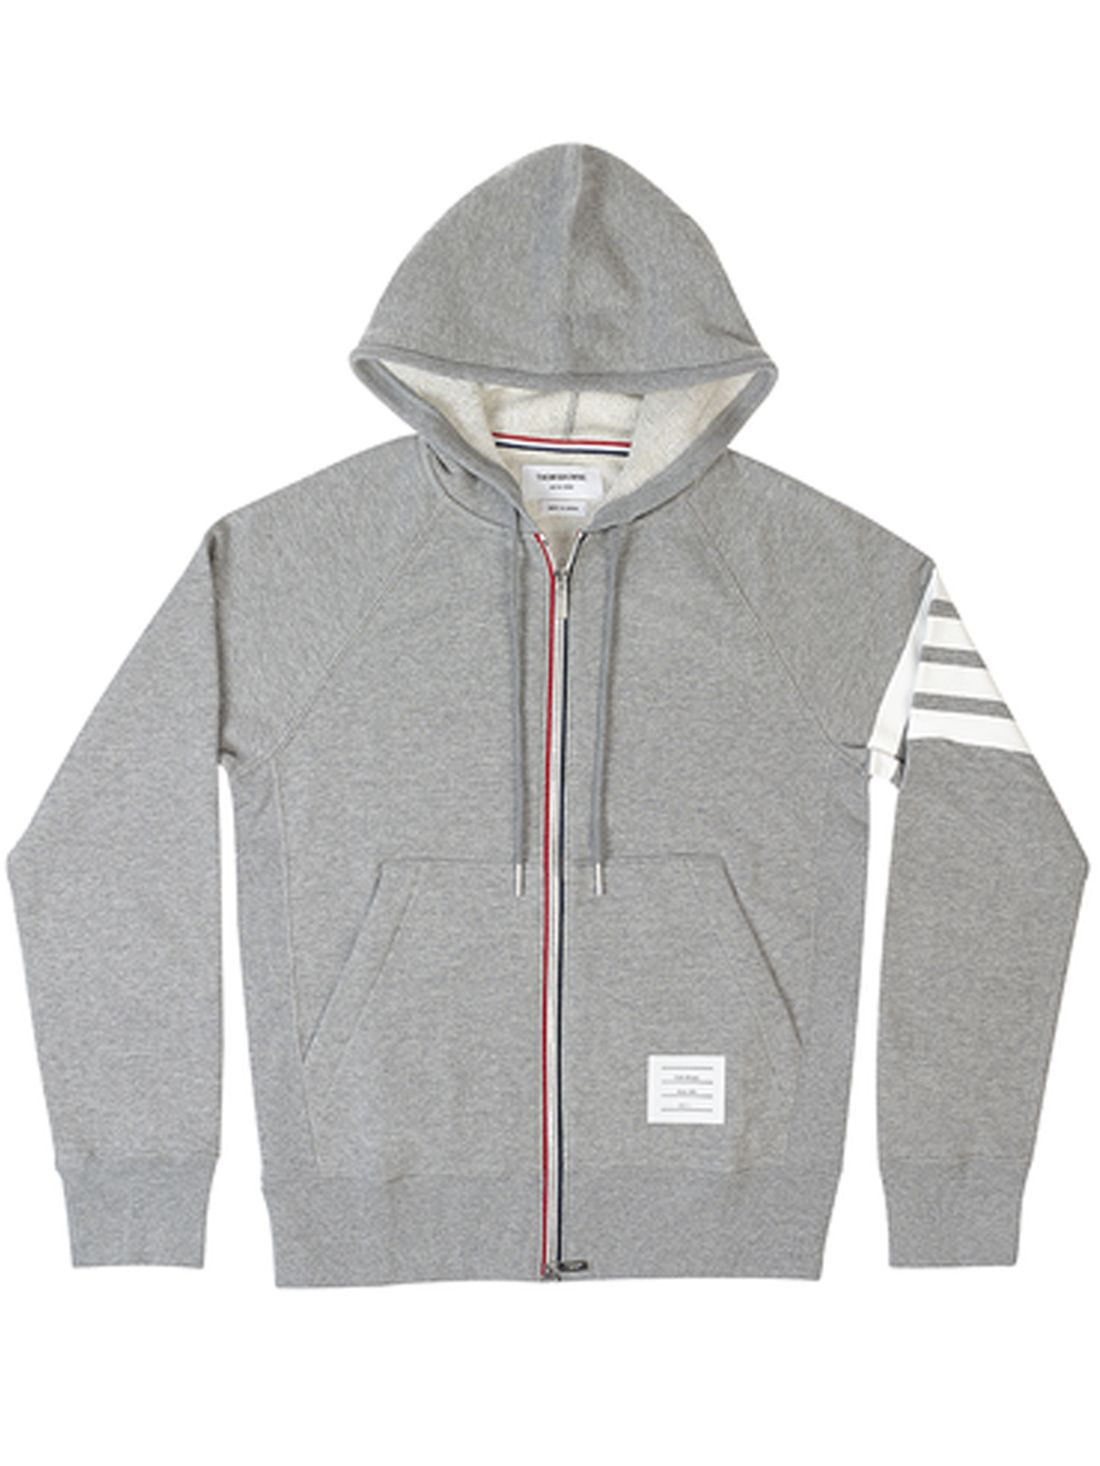 FULL ZIP HOODIE WITH CLASSIC 4-BAR STRIPES | Thom Browne